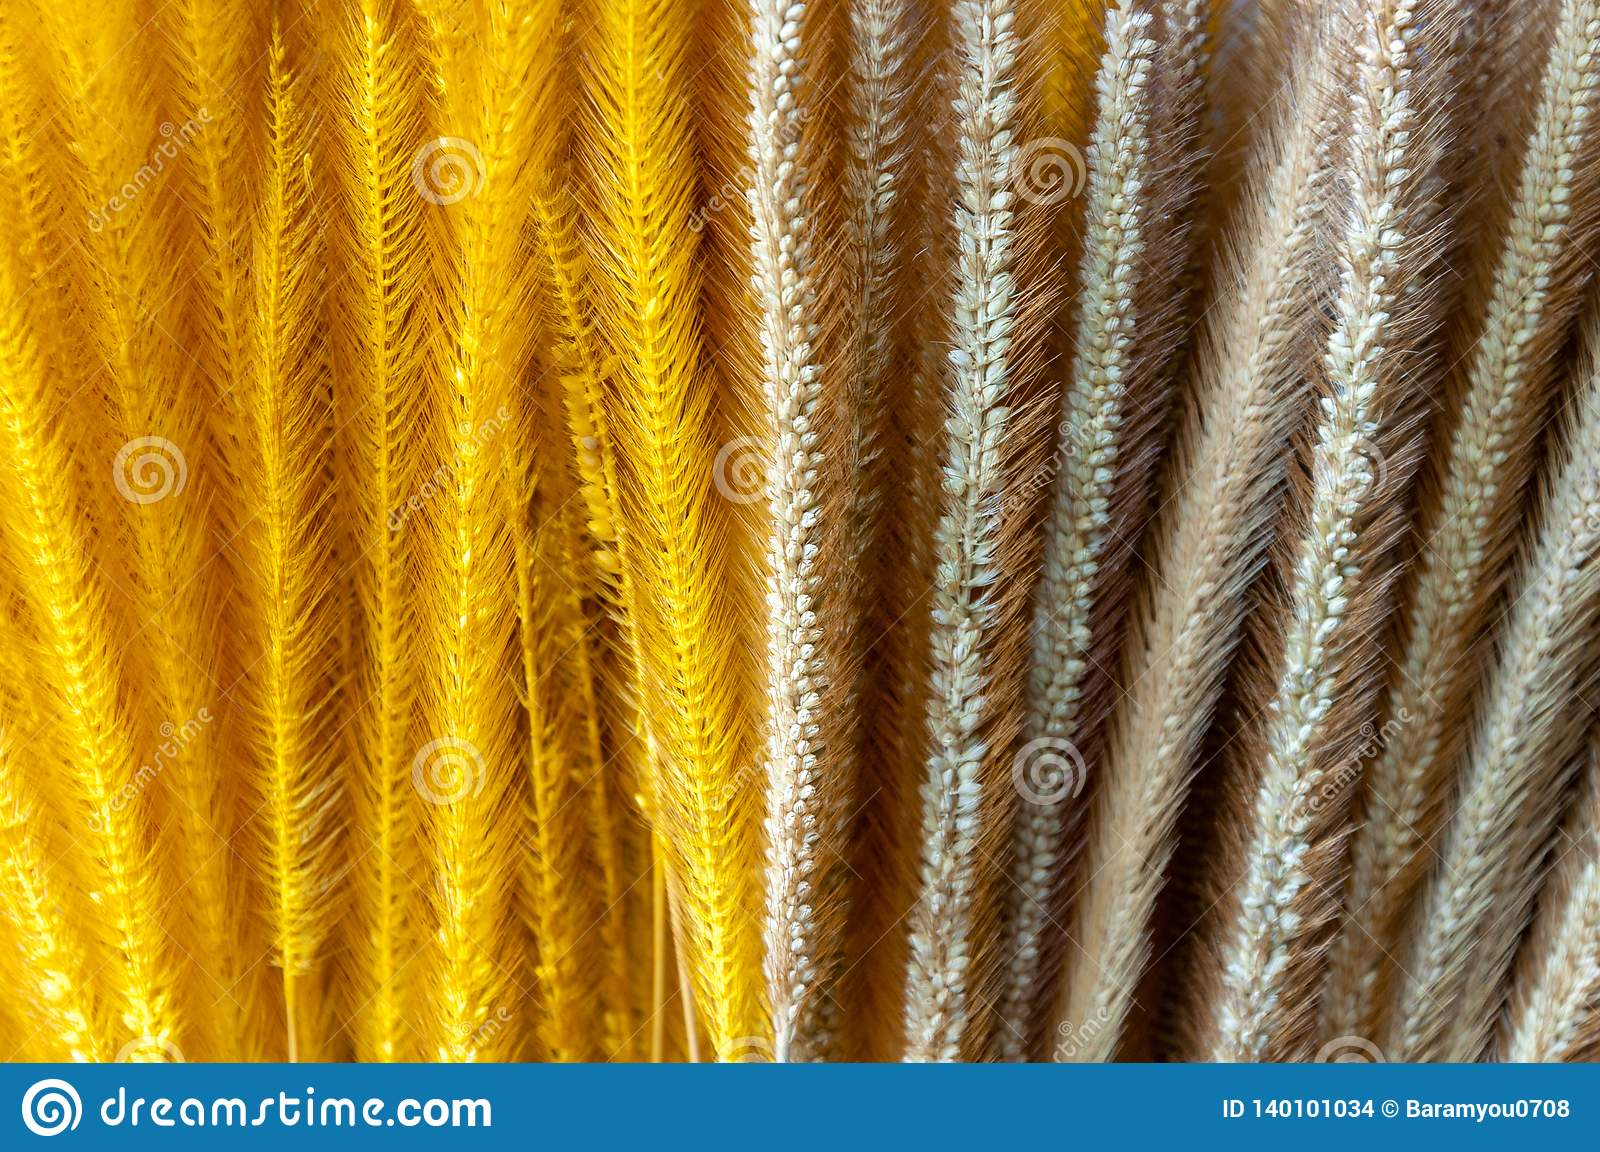 Plain and yellow color dyed of dry Pennisetum grass flower.